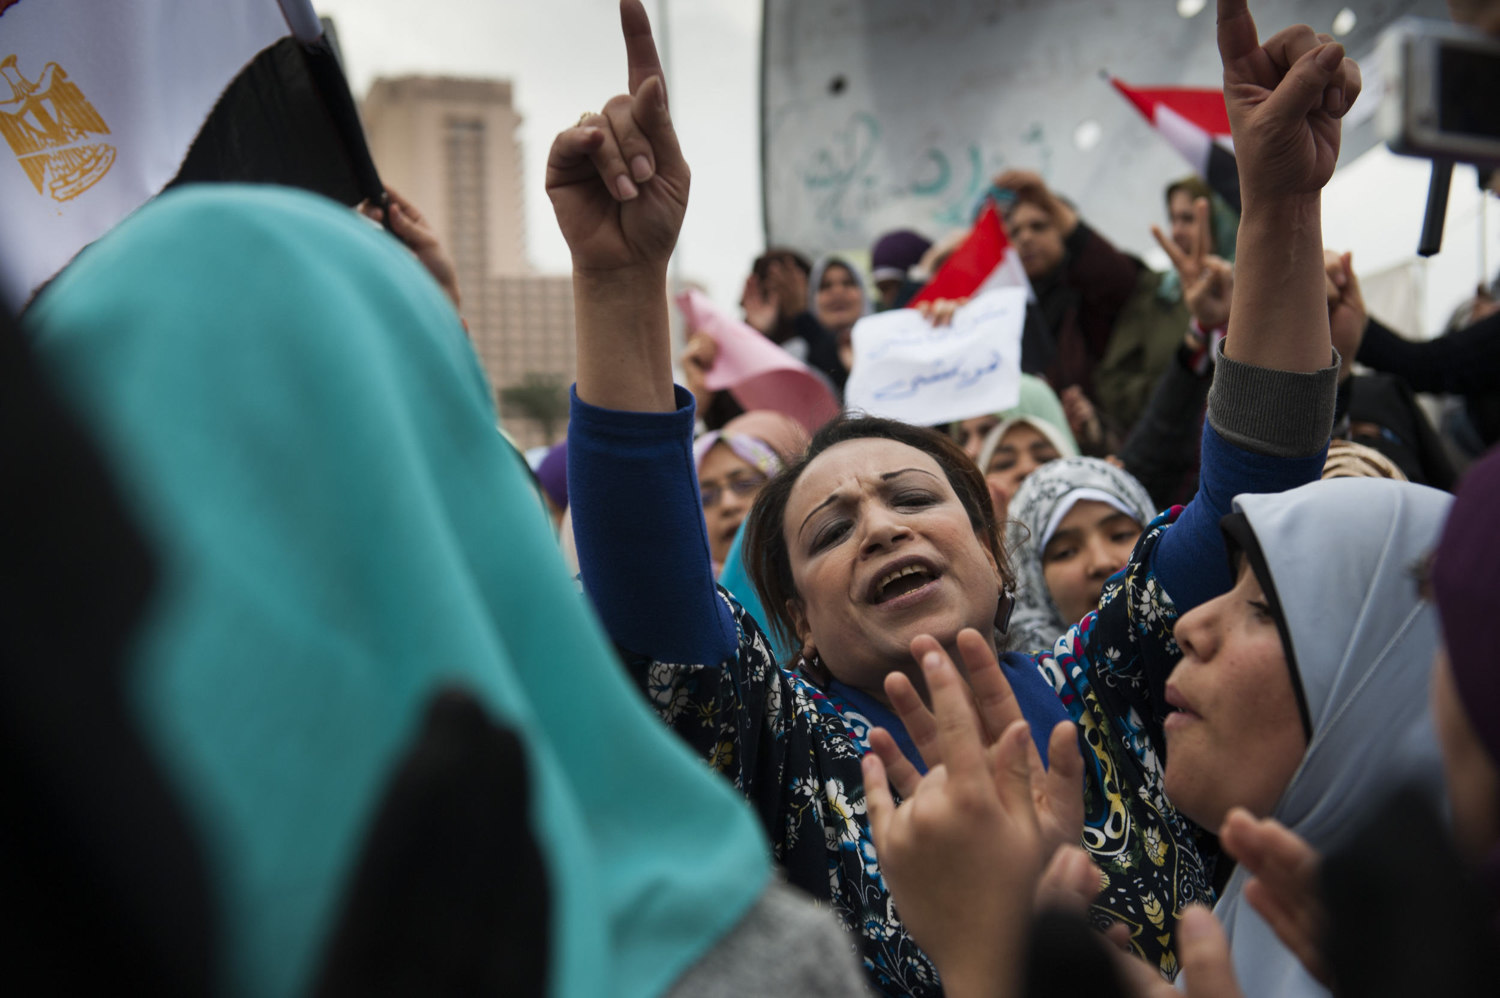 A woman leads the singing during a demonstration in Tahrir Square on February 6, 2011.